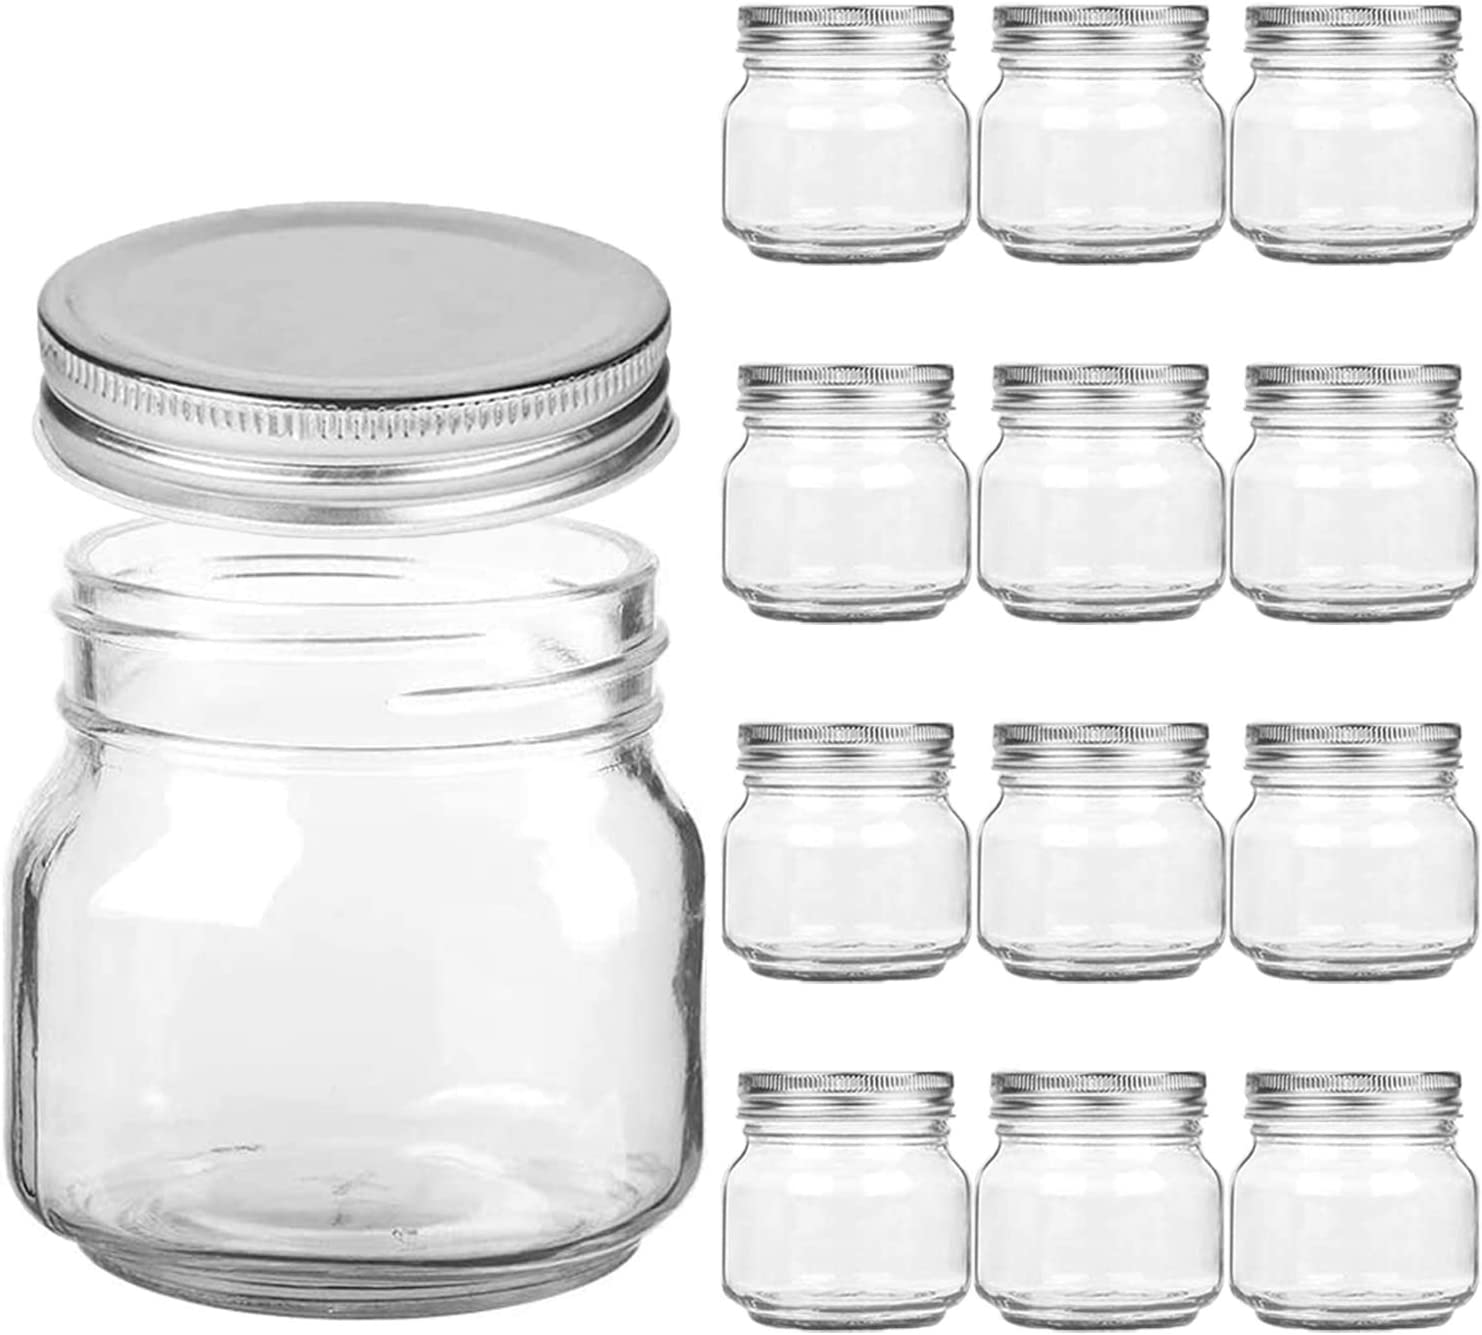 Mason Jars Regular Mouth - 8 oz Clear Glass Jars with Silver Metal Lids for Sealing, Food Storage, Overnight Oats, Jelly, Dry Food, Jam,DIY Magnetic Spice Jars, 12 Pack